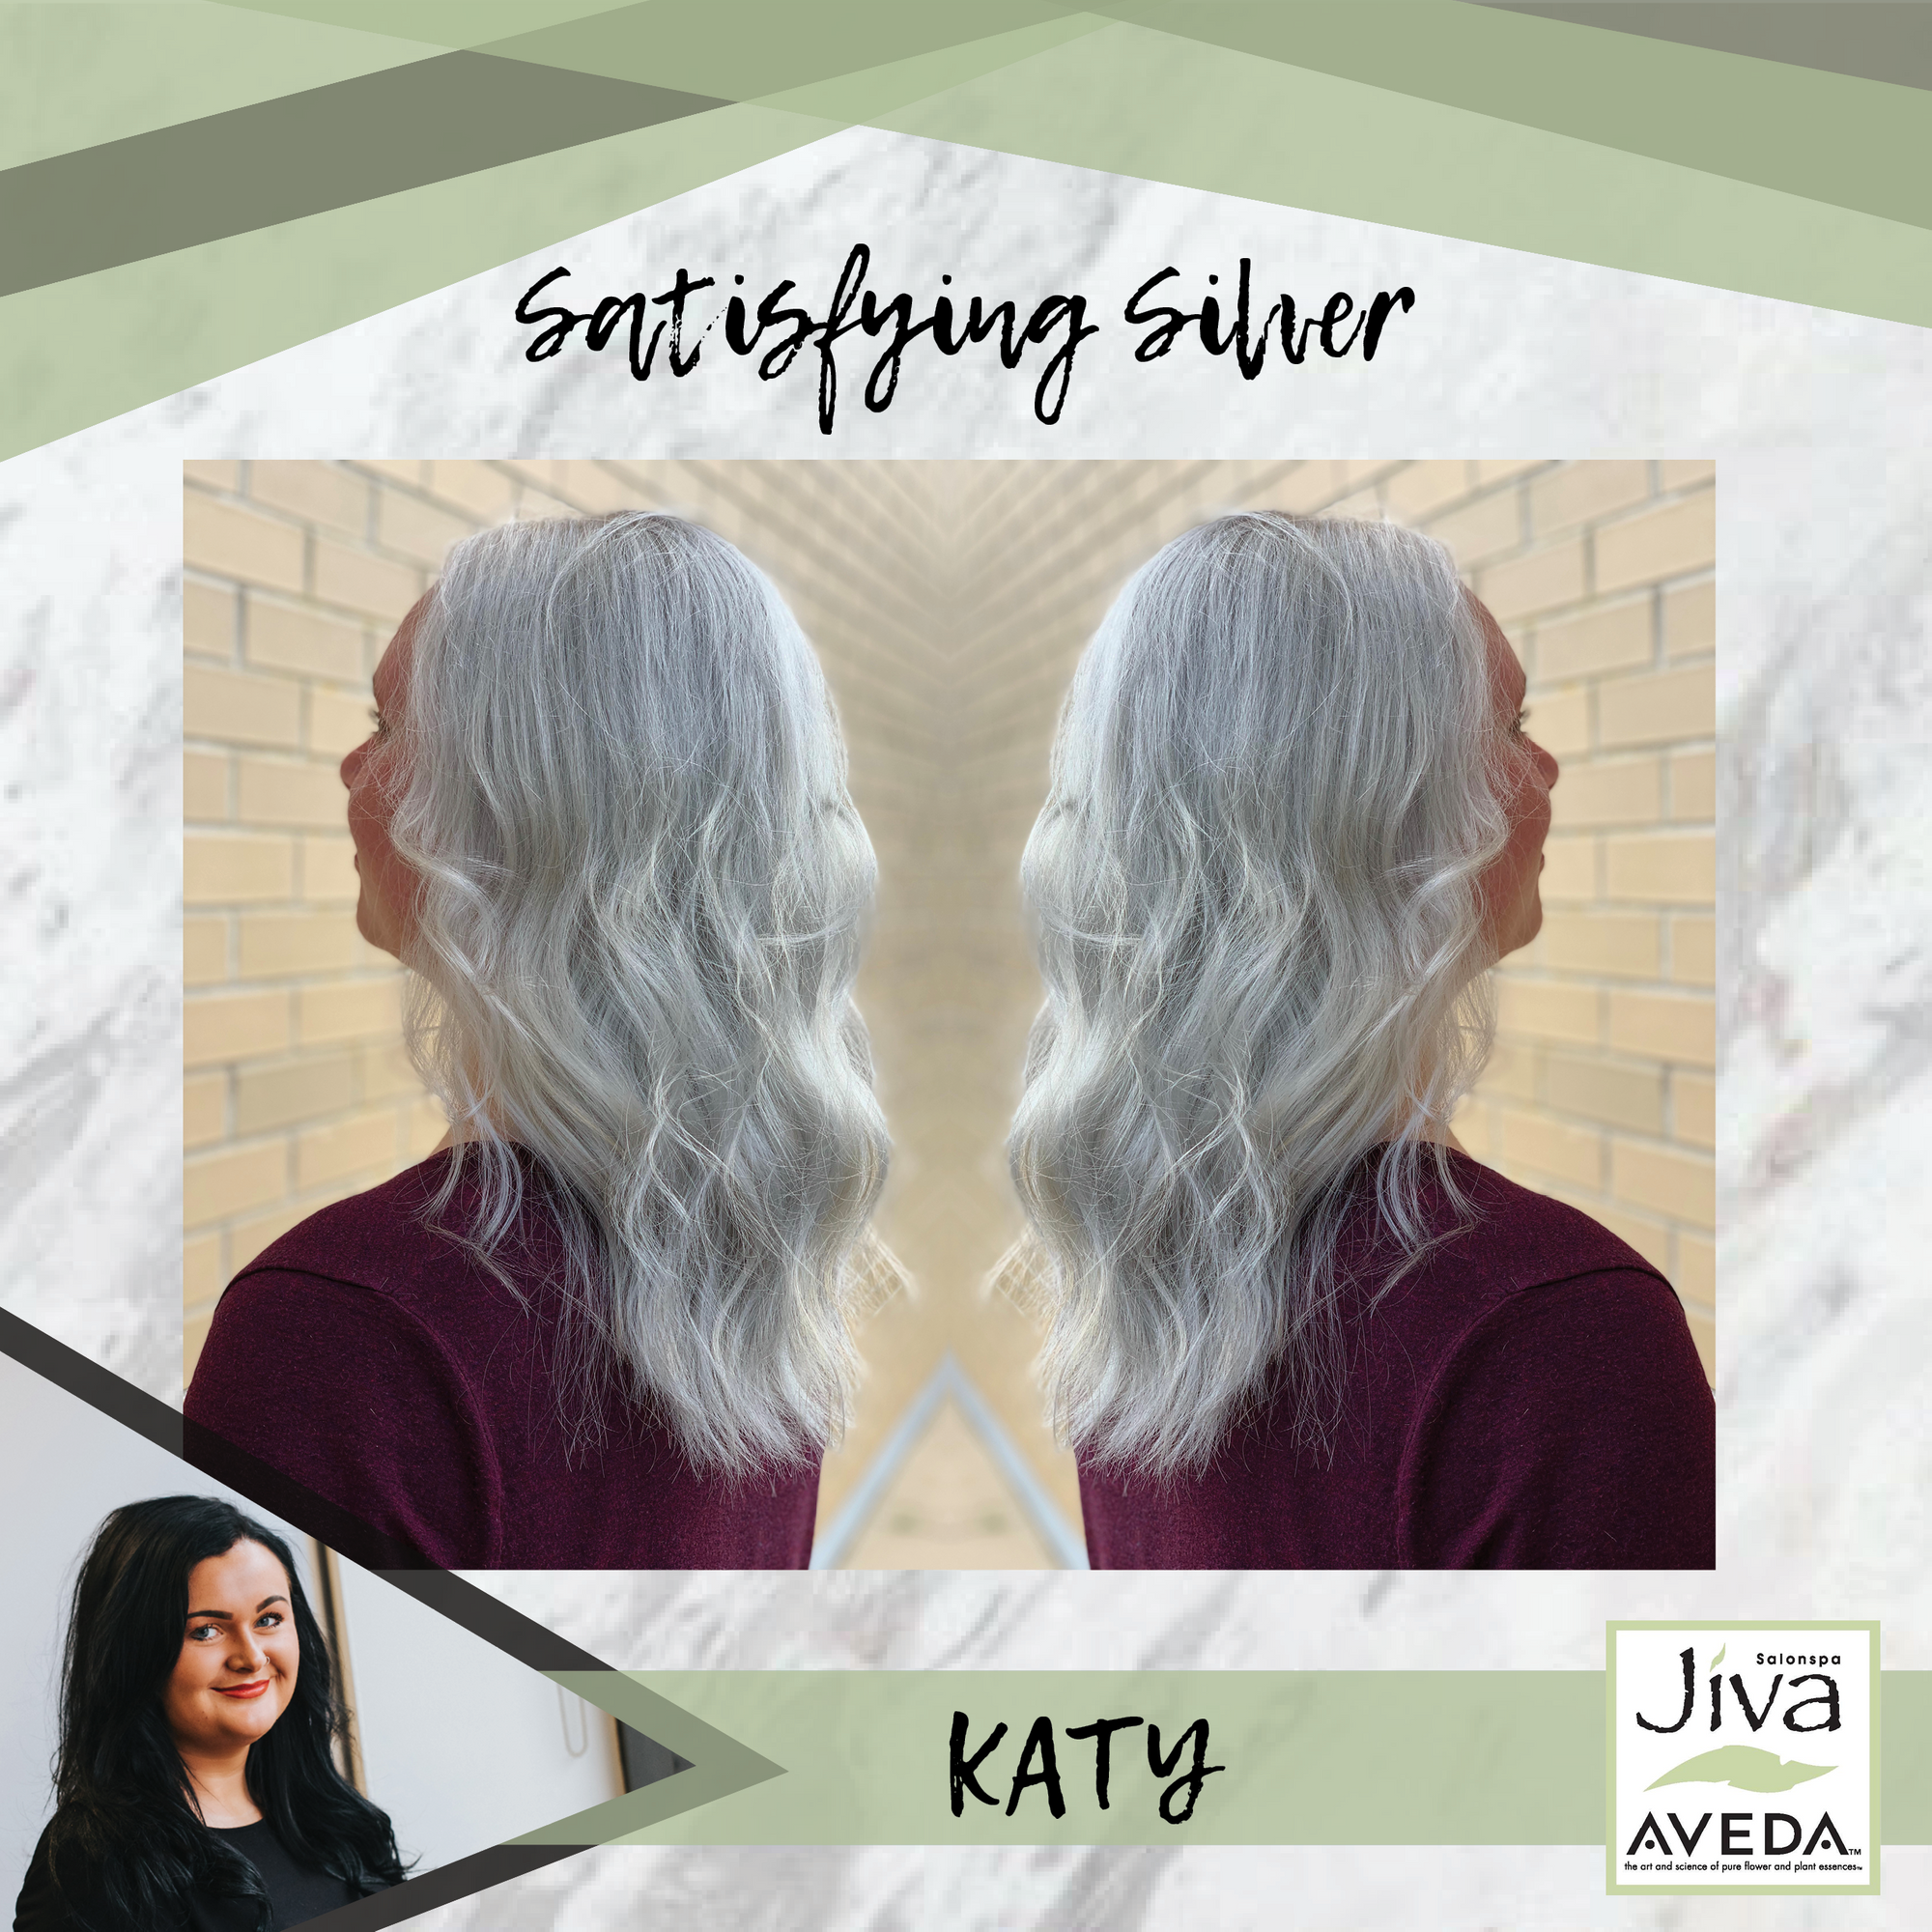 Achieving This Color Was A Process But The End Result Is So Satisfying Avedacolor Jivasalonspa Silver Salon Services Aveda Color Aveda Spa